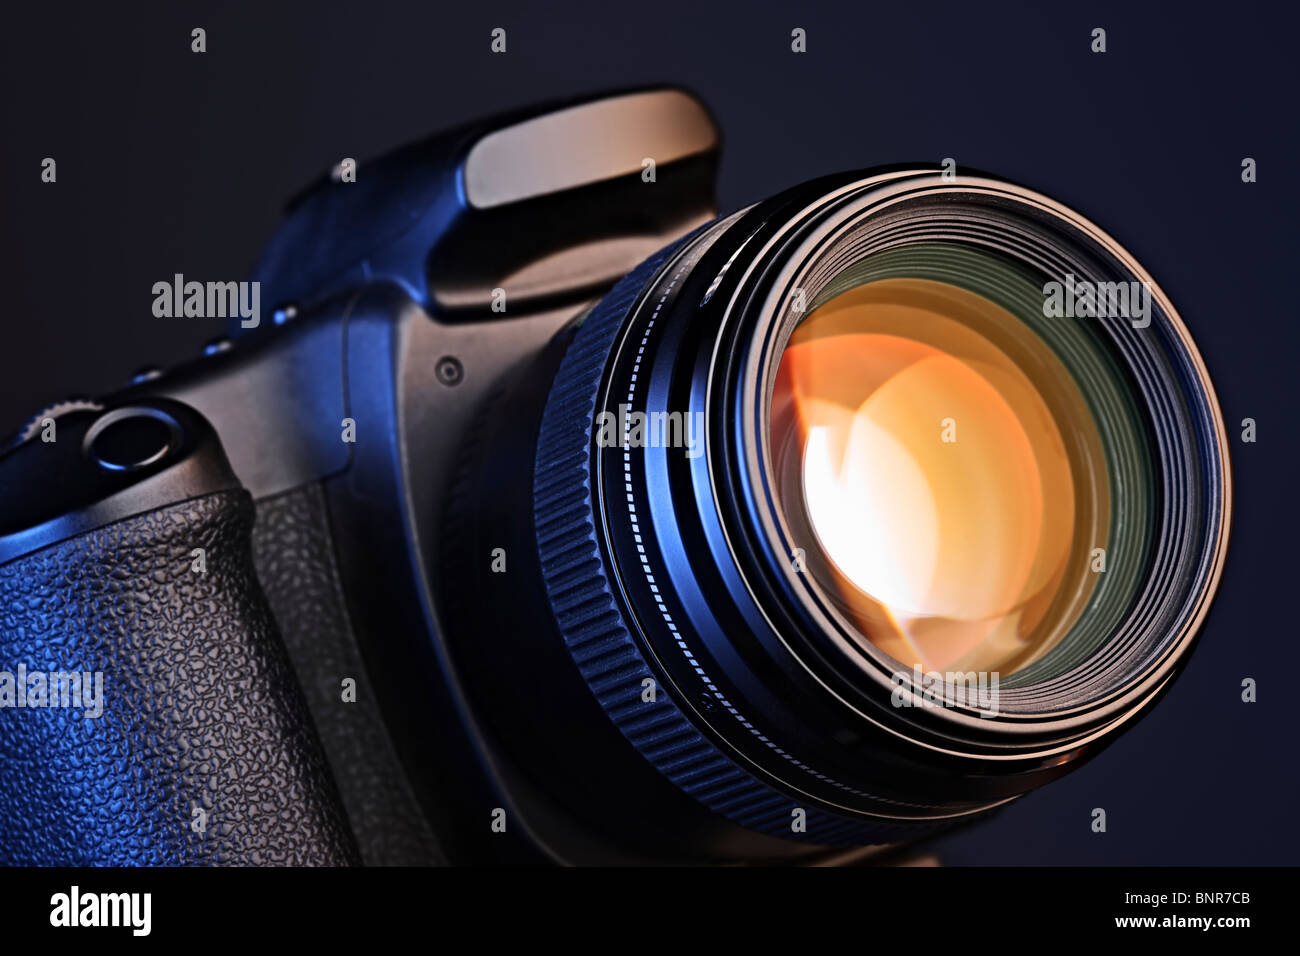 Digital camera with a lens - Stock Image